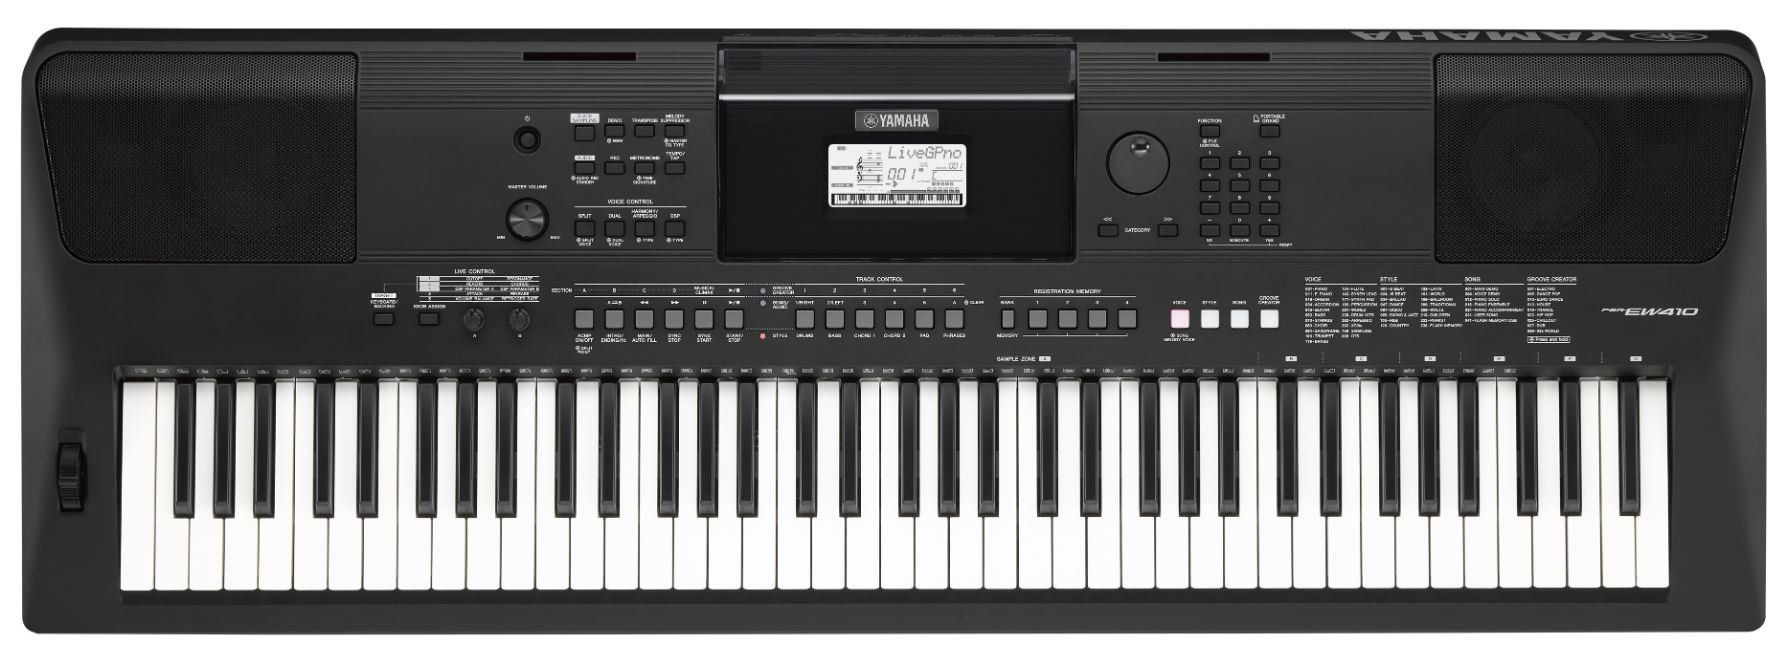 Yamaha PSREW410 76-Key High-Level Portable Keyboard